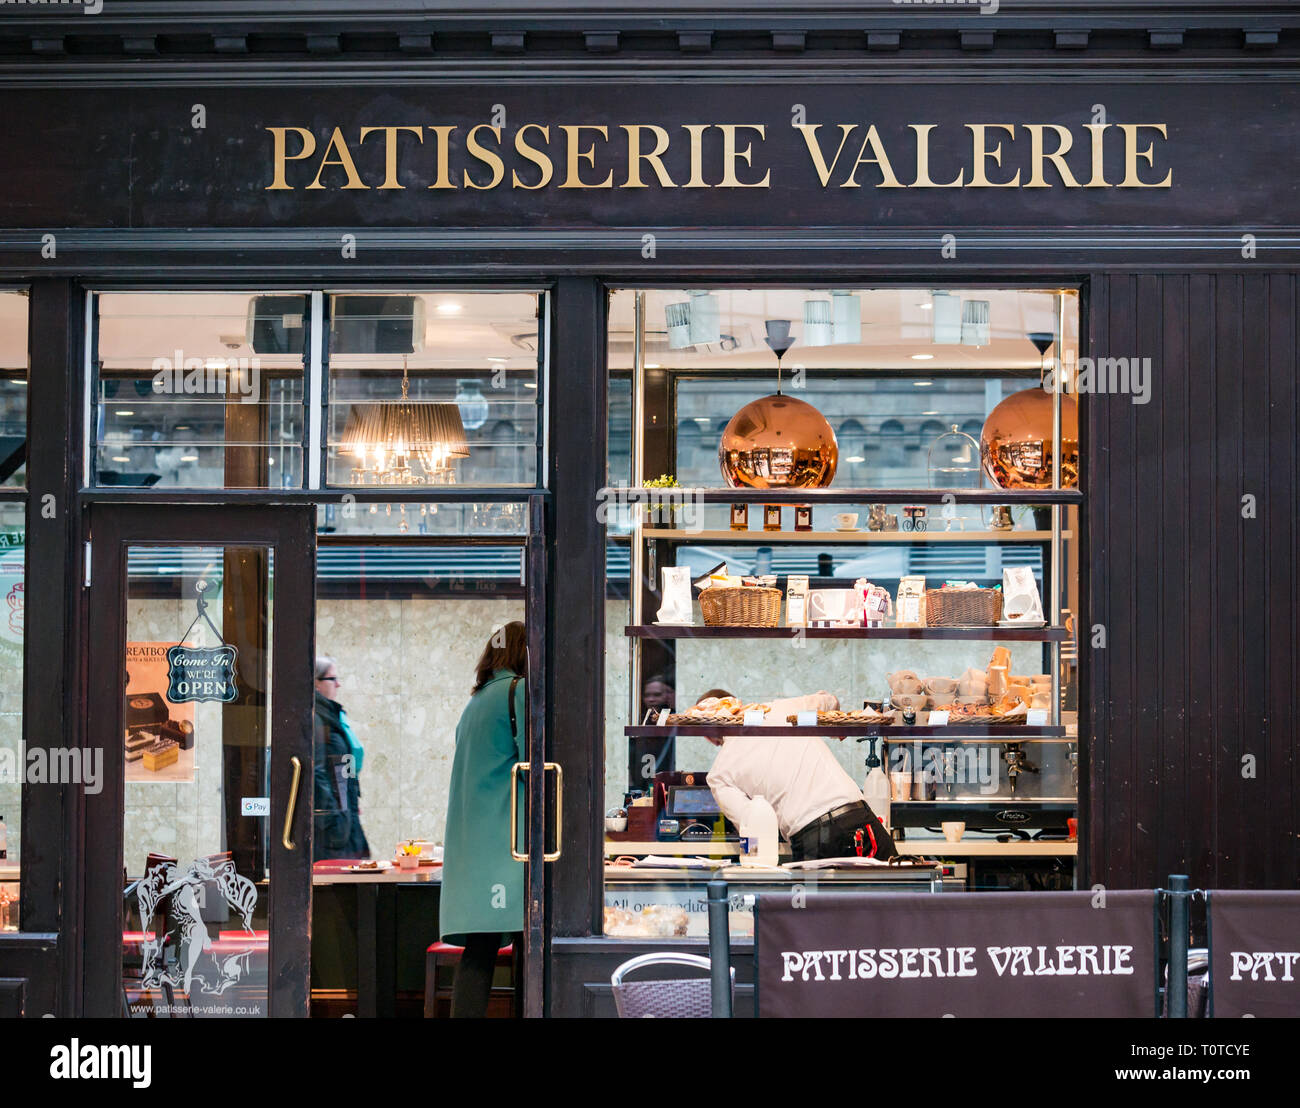 Customer in Patisserie Valerie, Glasgow Central Station concourse, Scotland, UK - Stock Image